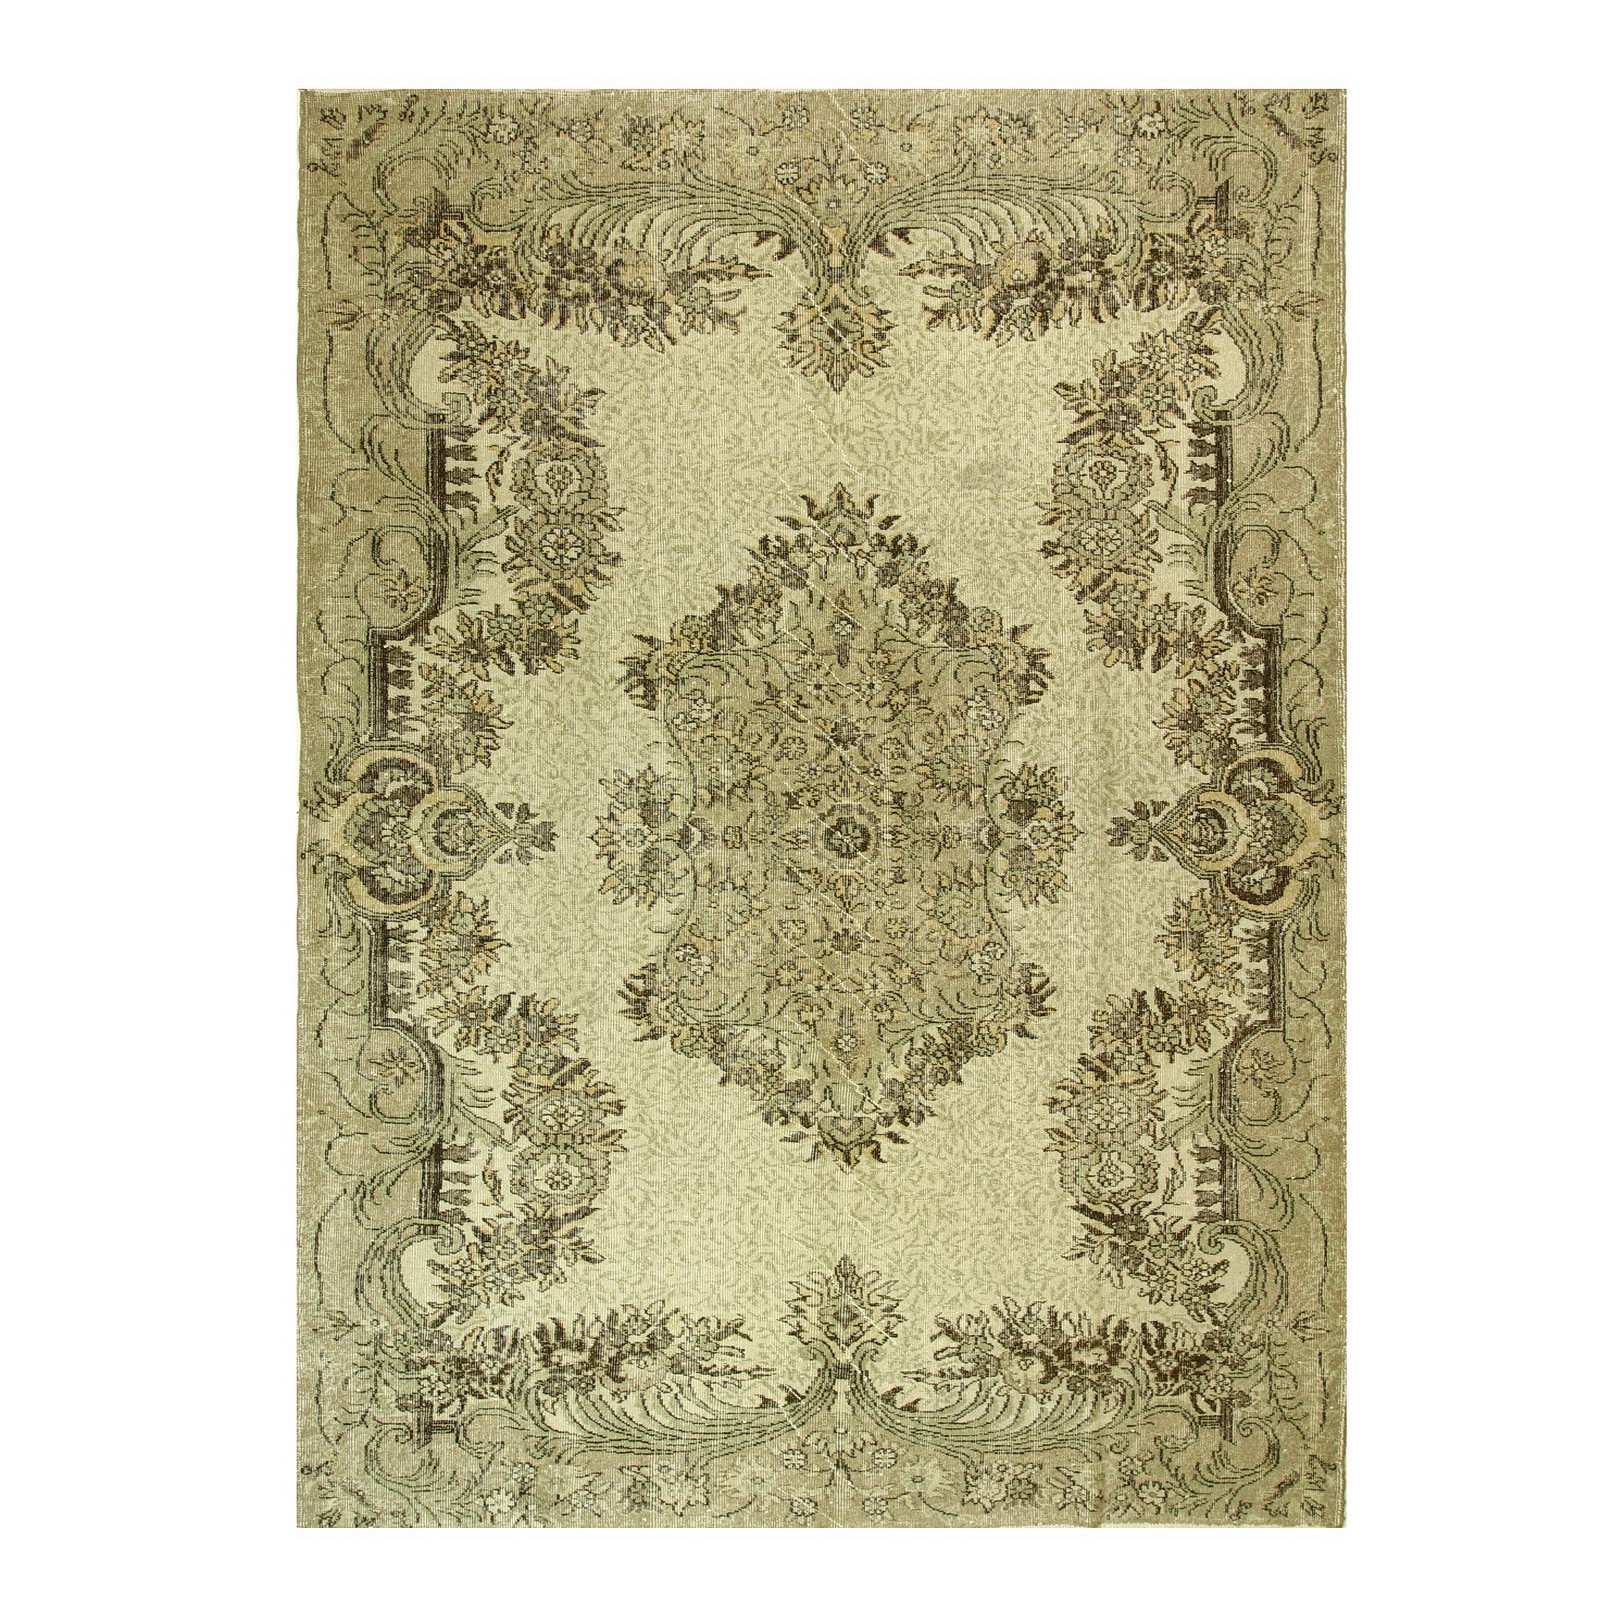 Natural Color Vintage Carpets